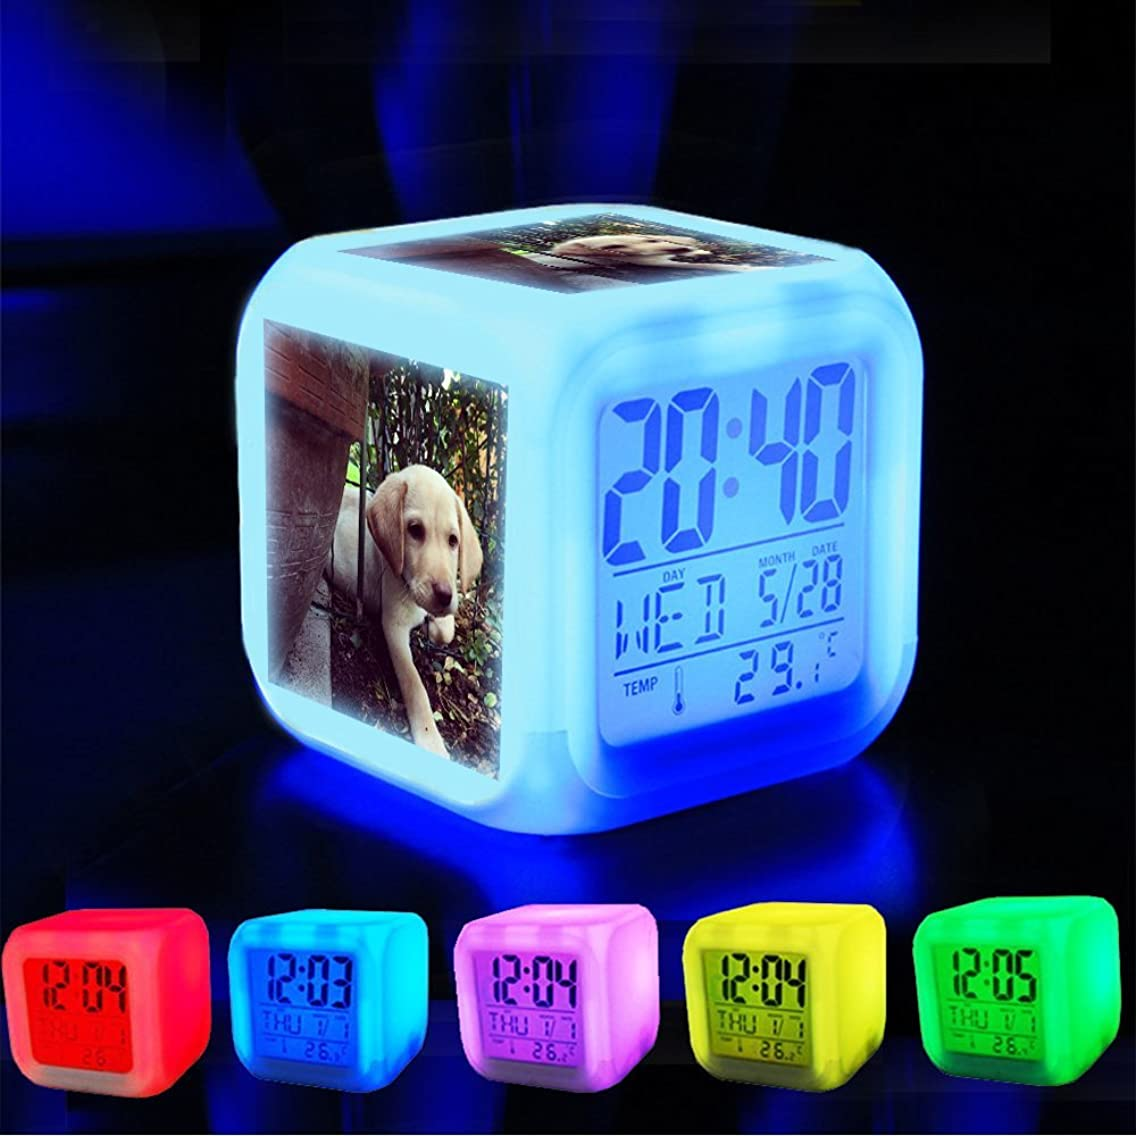 Alarm Clock 7 LED Color Changing Wake Up Bedroom with Data and Temperature Display (Changable Color) Customize the pattern-011. puppy labrador lab pets dogs picoftheday